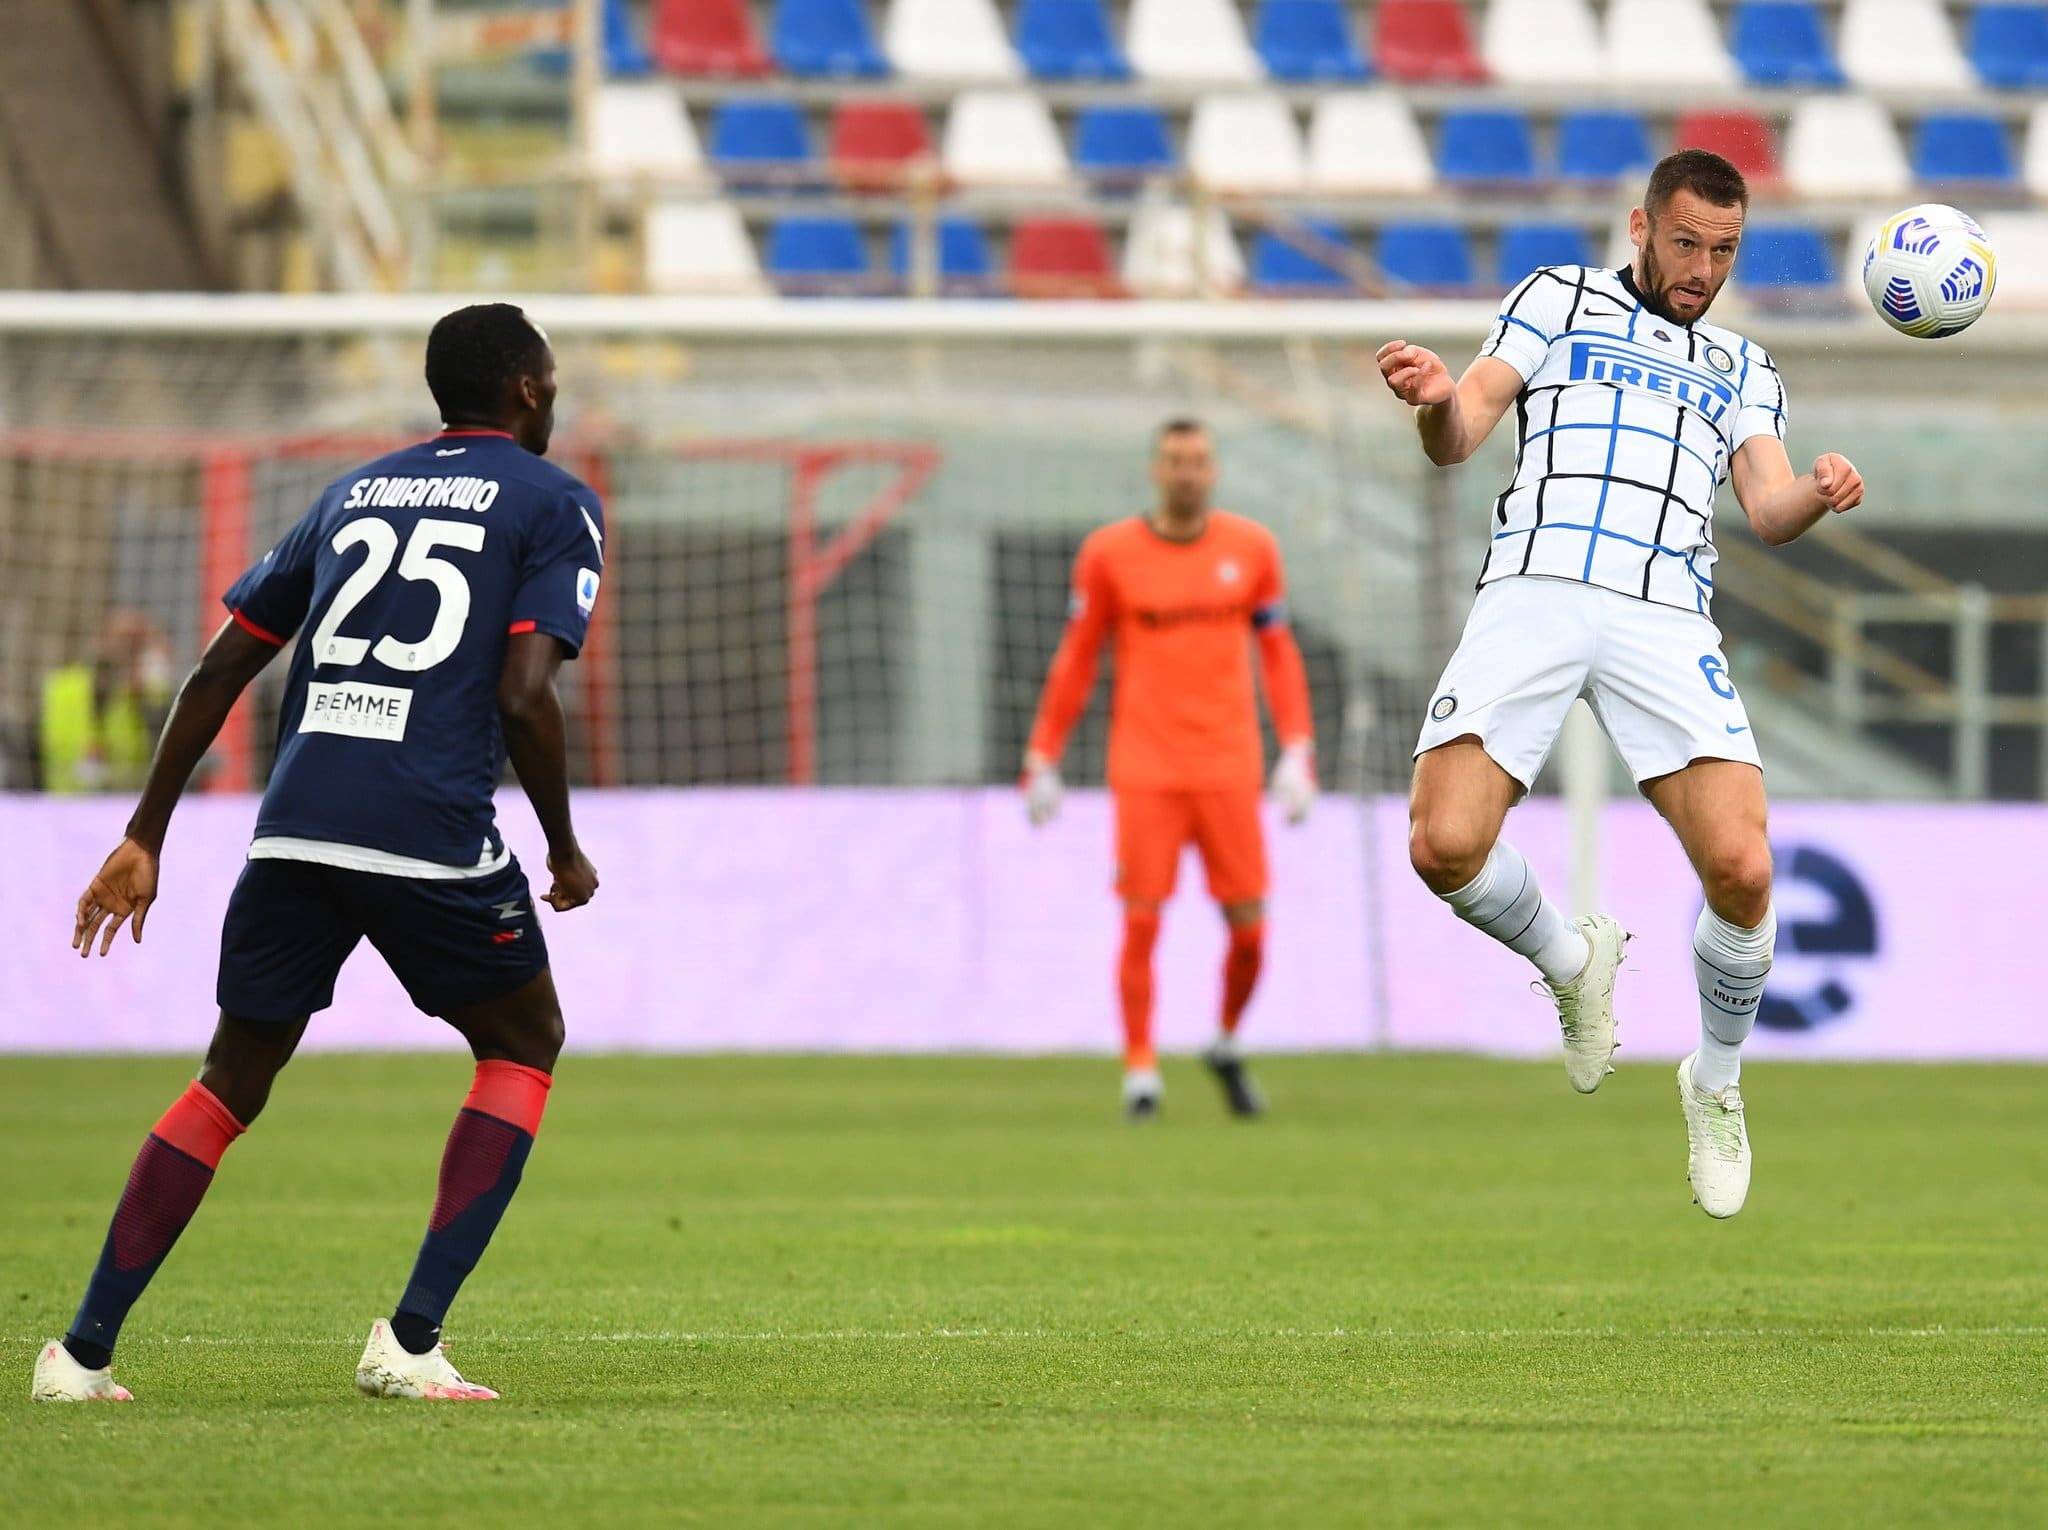 Serie A: Simy Fires Blank As Crotone's Relegation Confirmed After Home Defeat Vs Inter